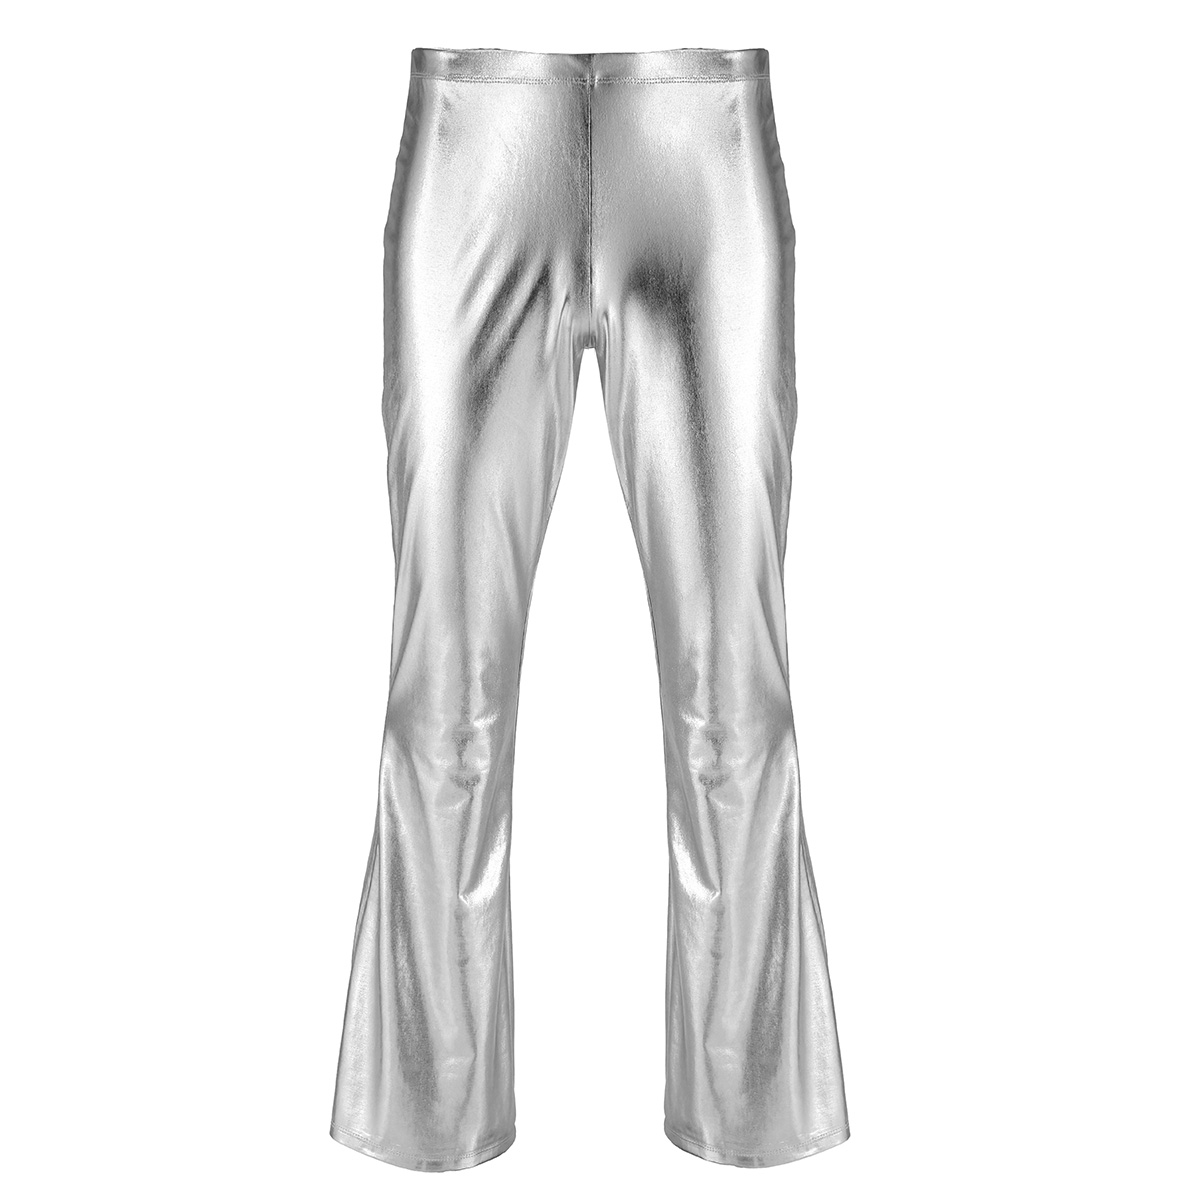 Adult Mens Moto Punk Style Party Pants Shiny Metallic Disco Pants with Bell Bottom Flared Long Pants Dude Costume Trousers 22